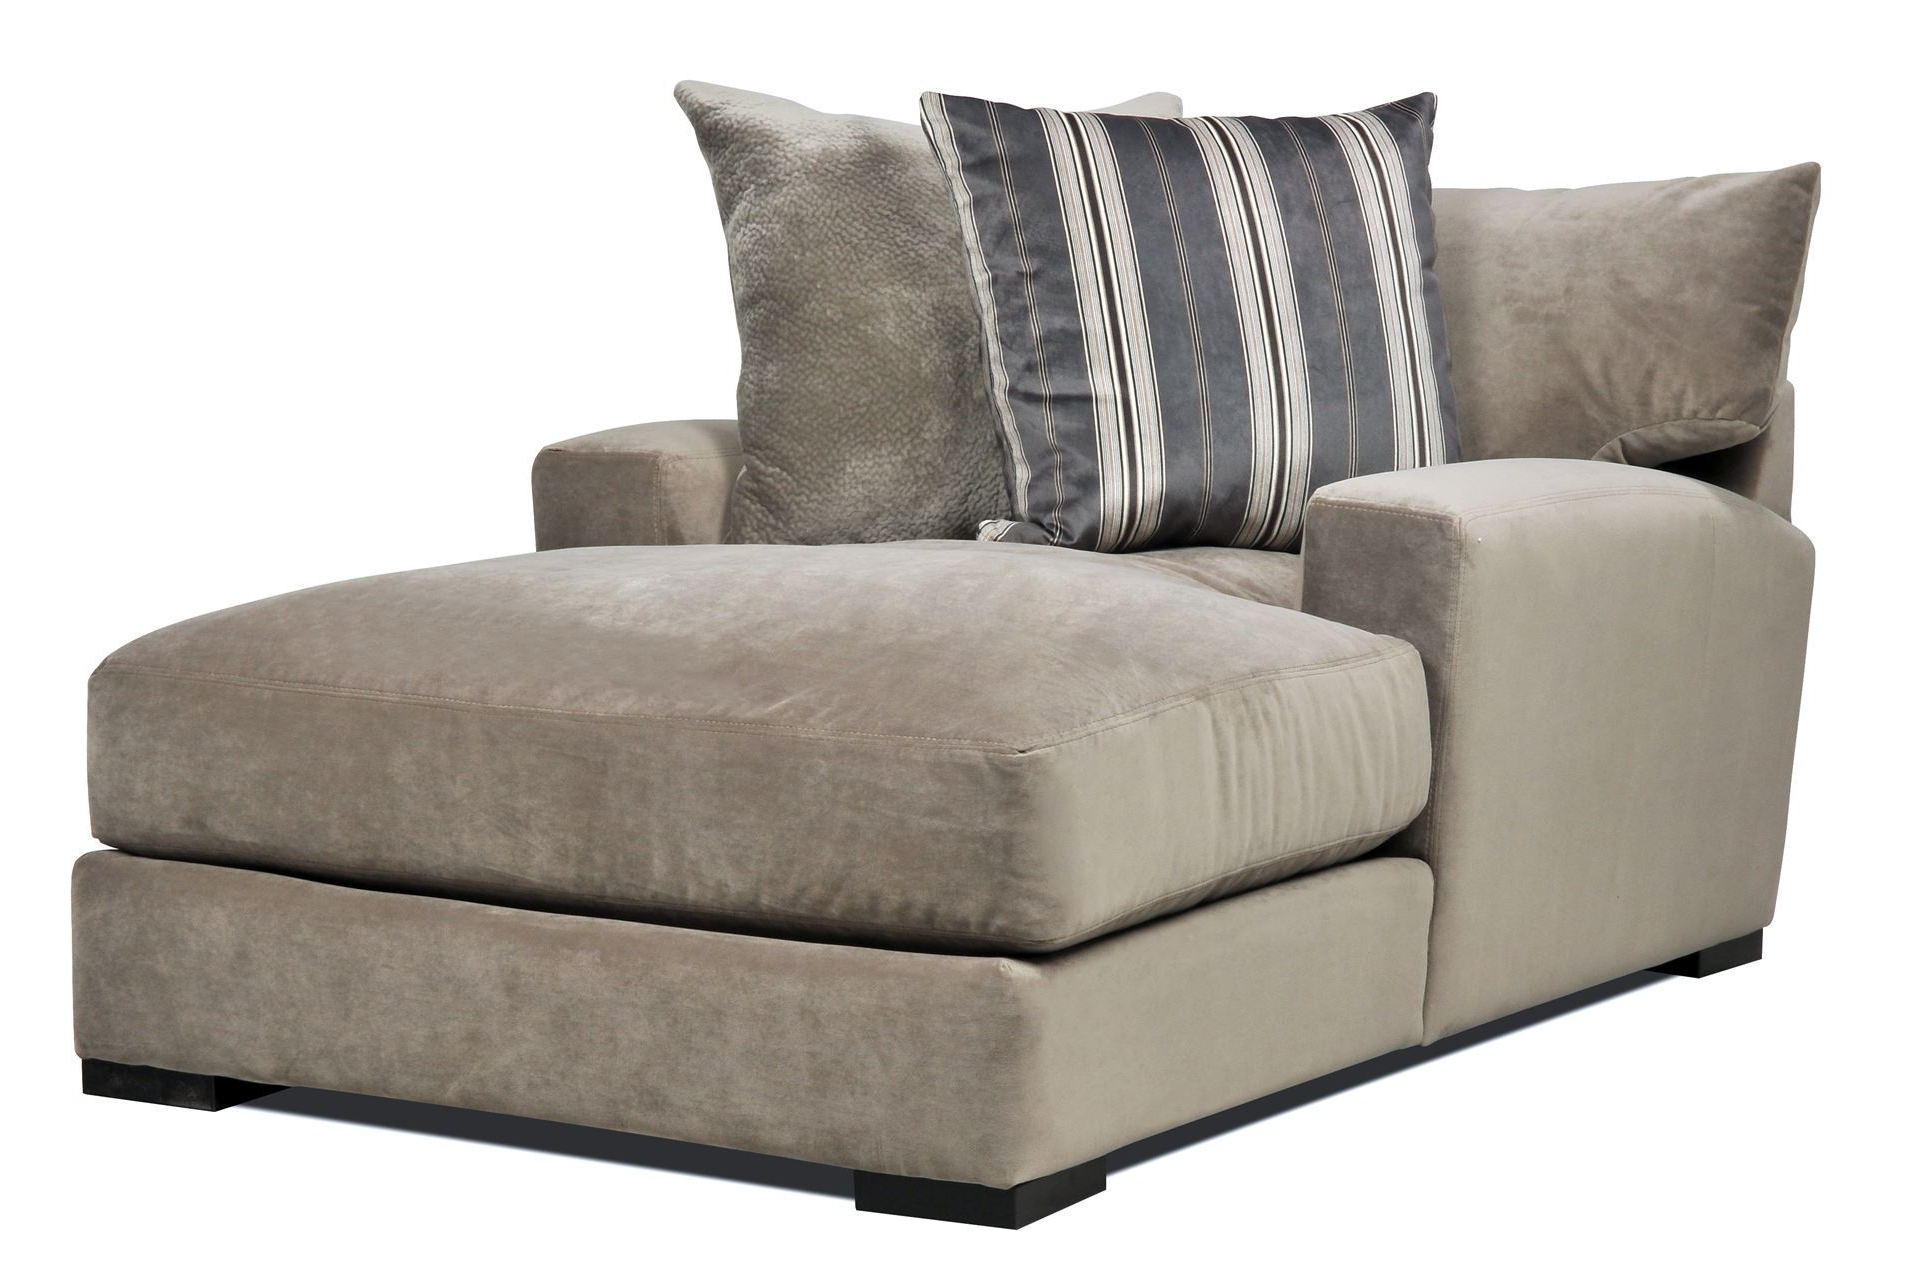 Famous Decoration In Large Chaise Lounge With Oversized Chaise Lounge For Oversized Chaise Lounge Chairs (View 10 of 15)